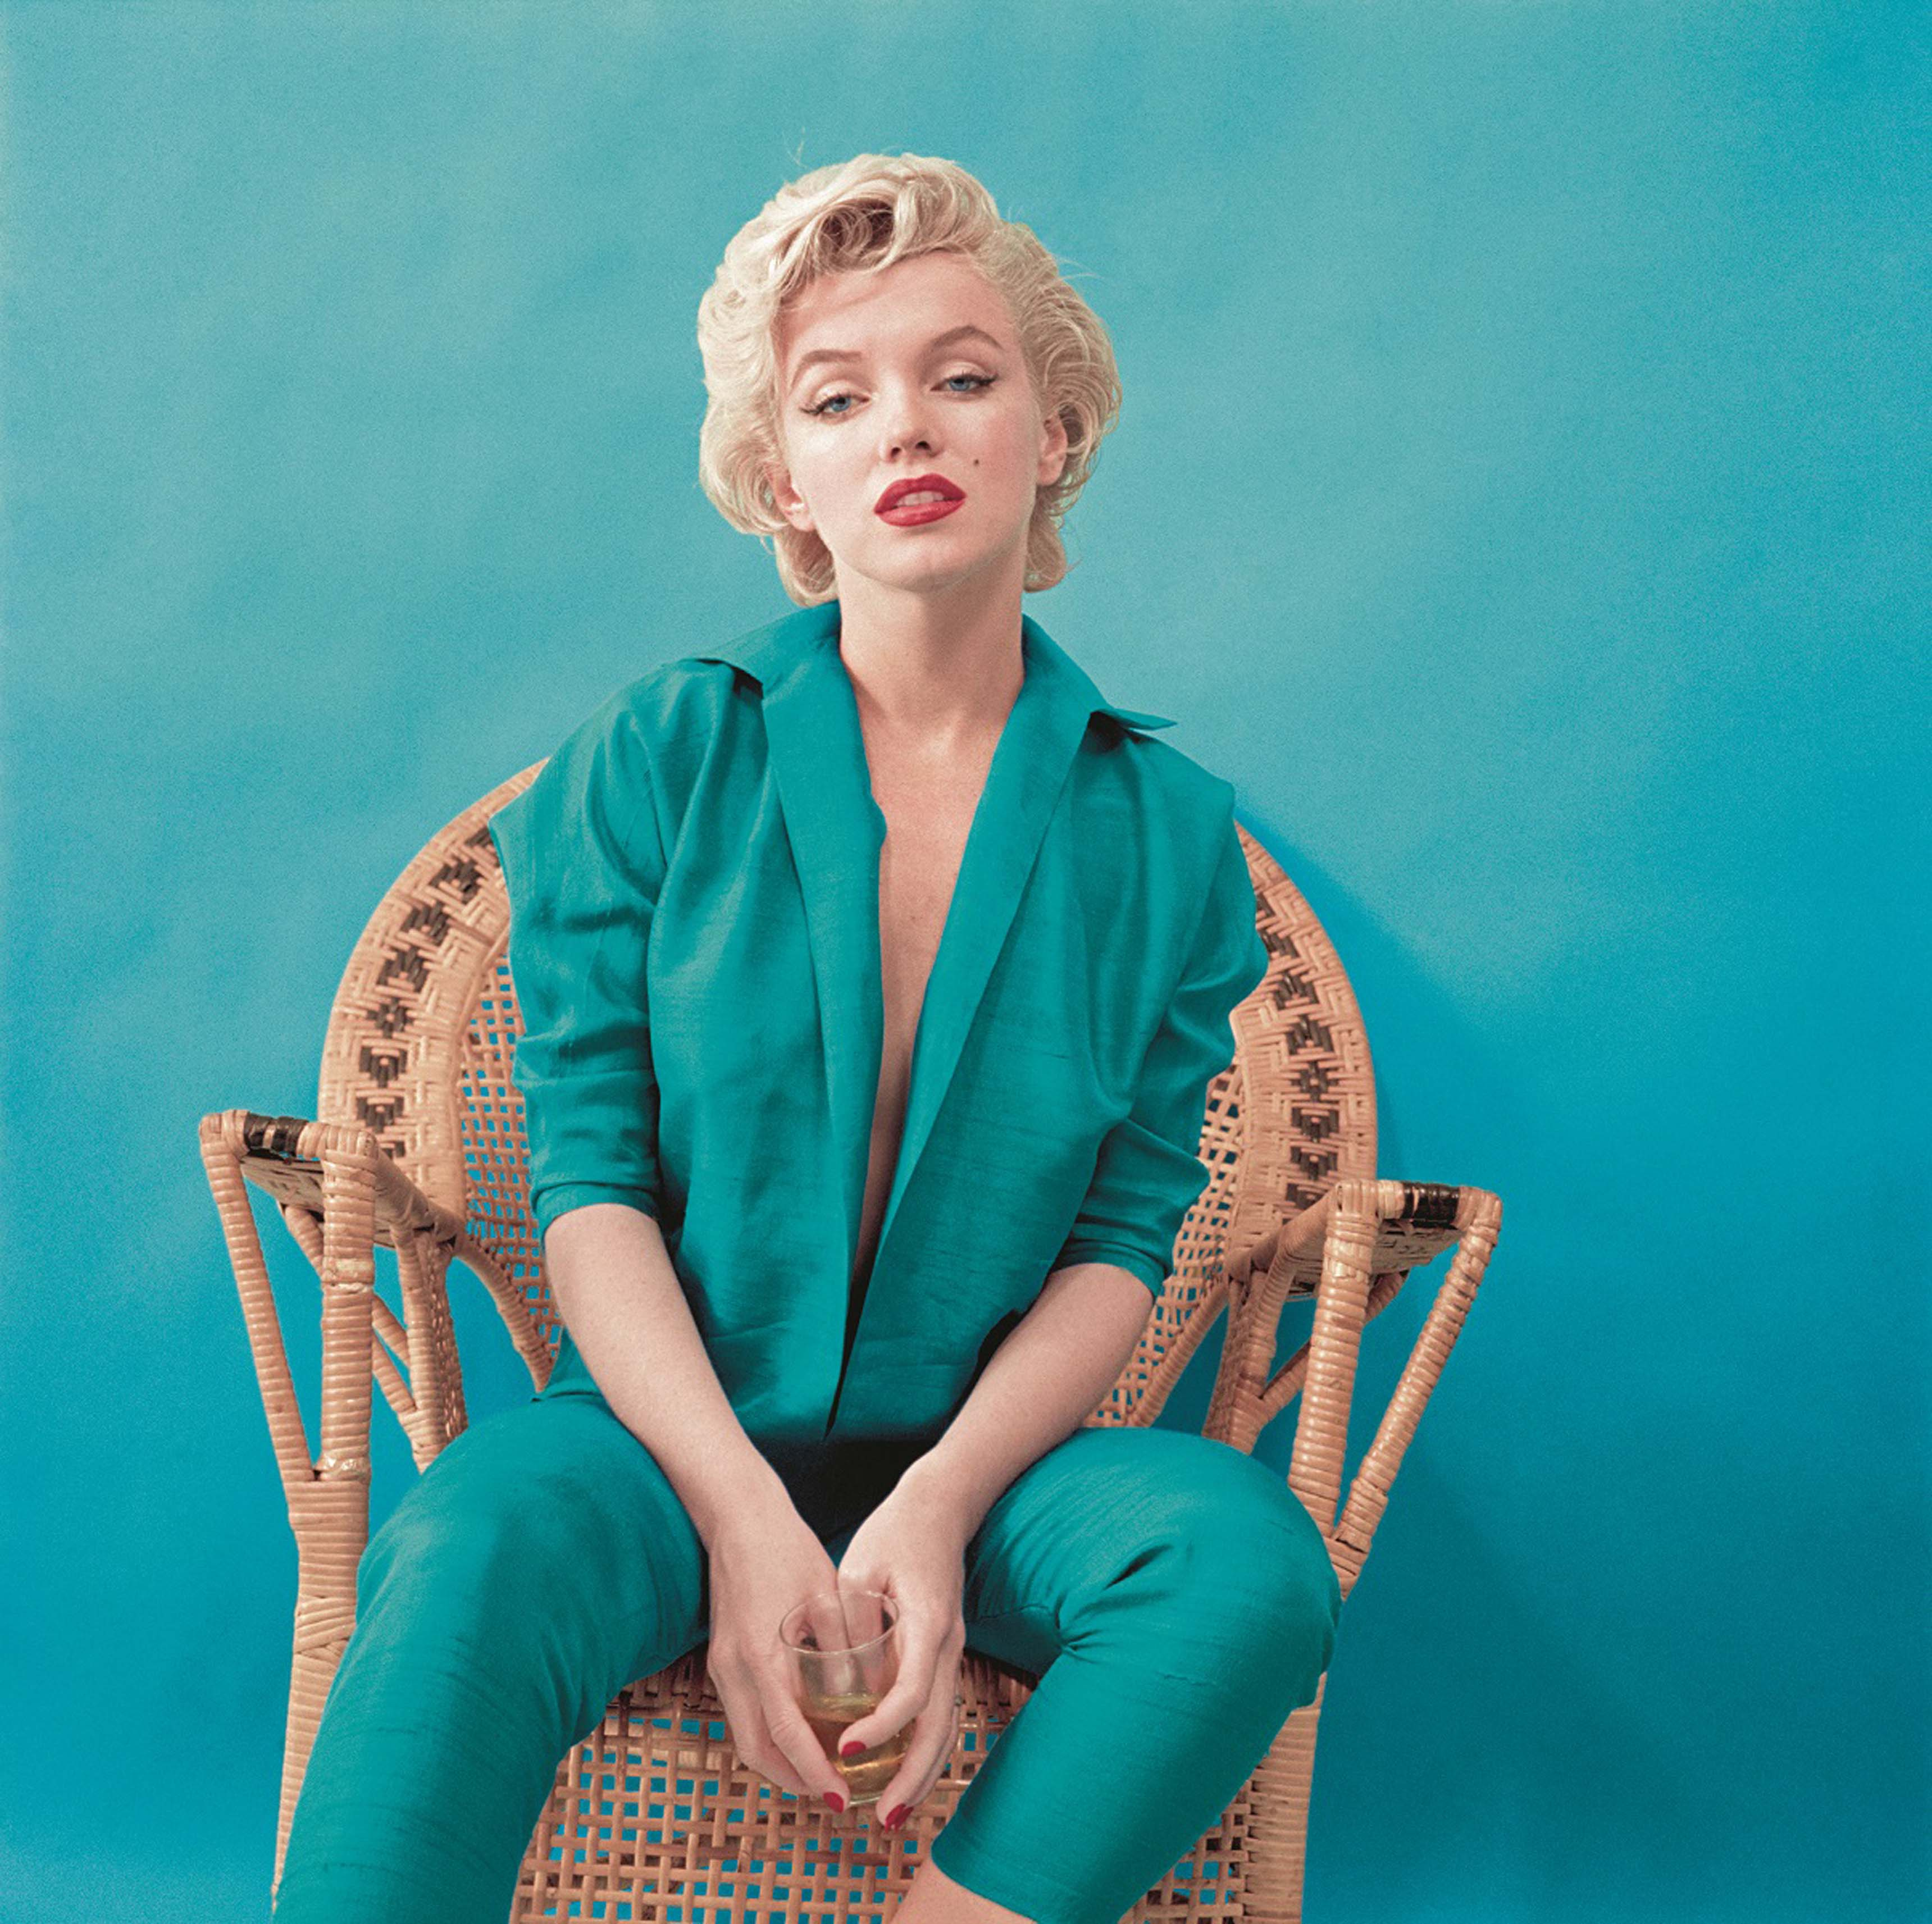 Photographed by Milton H. Greene - The Essential Marilyn Monroe, published by ACC Editions ©2017 Joshua